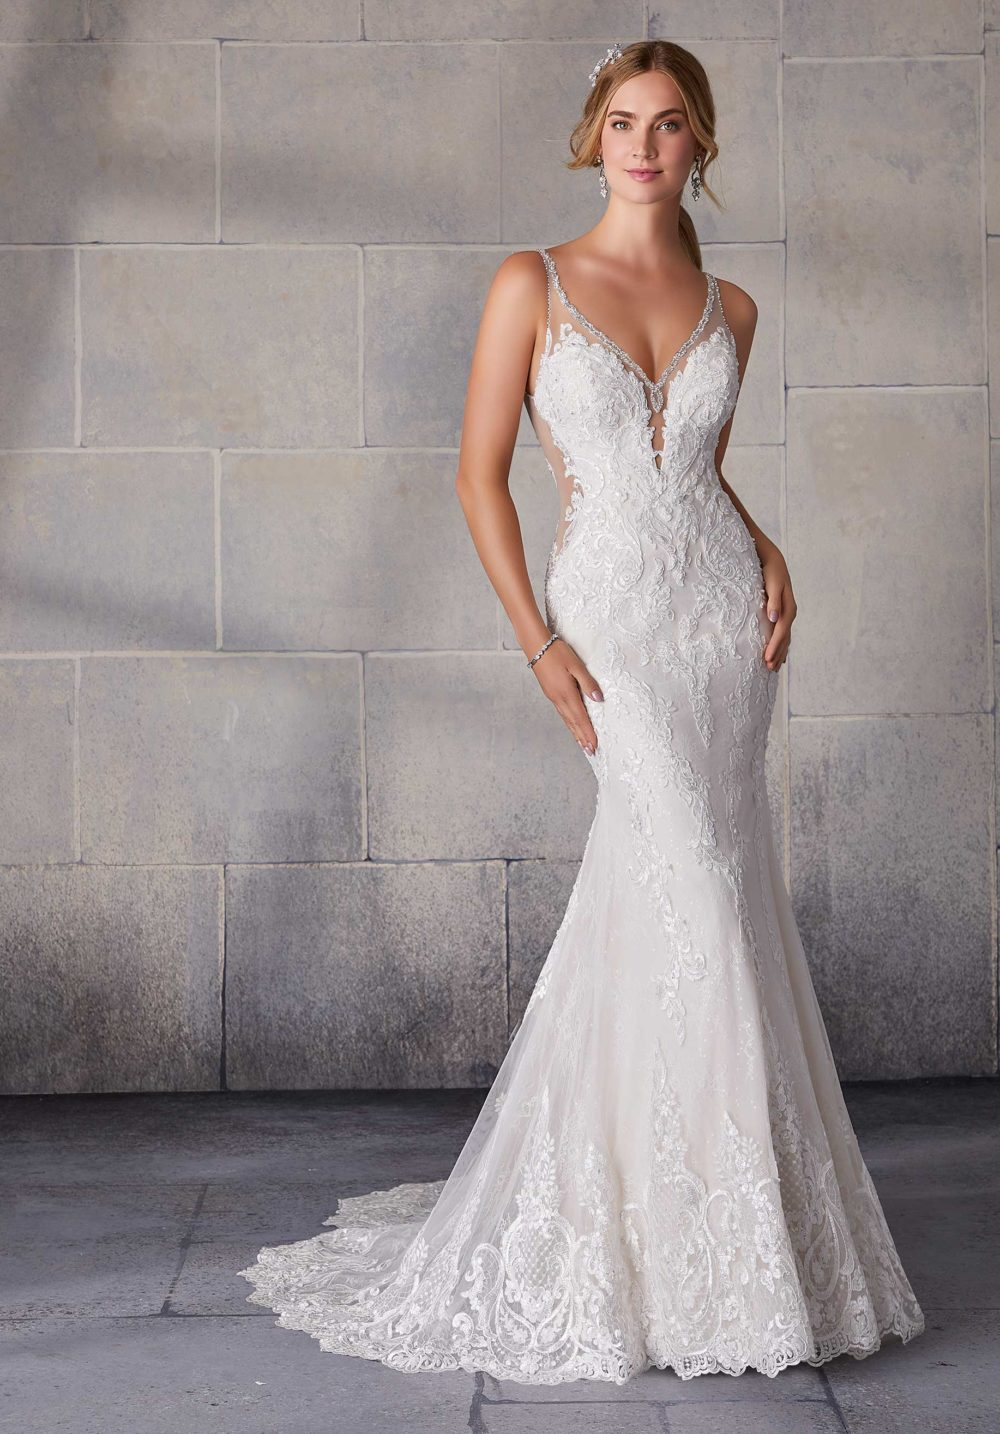 Morilee Wedding Gown Dress style 2139